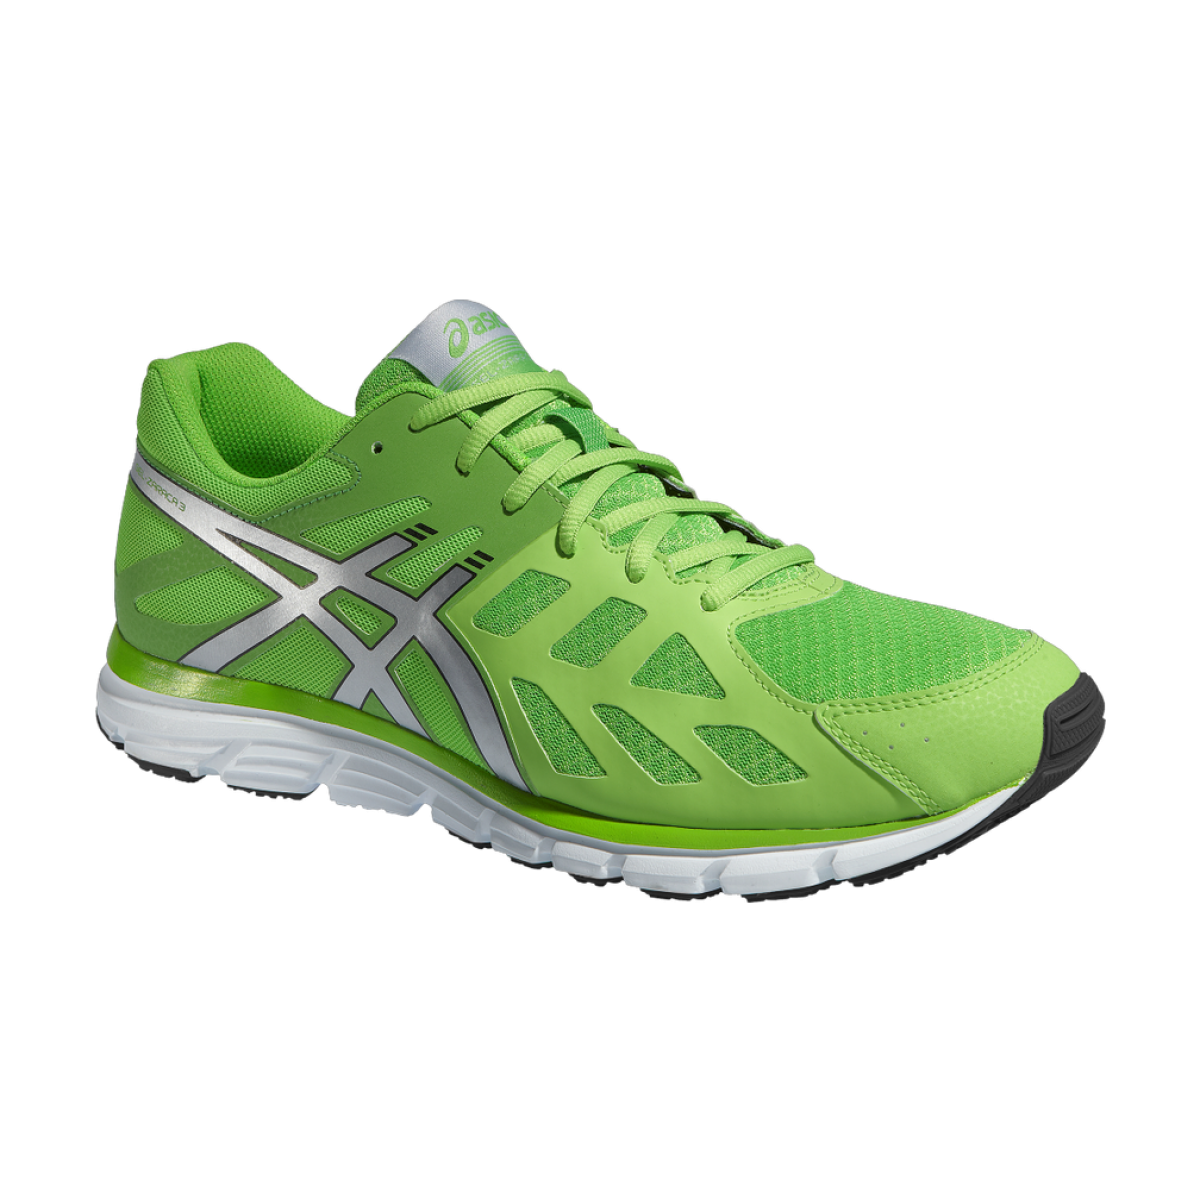 green asics running shoes png image